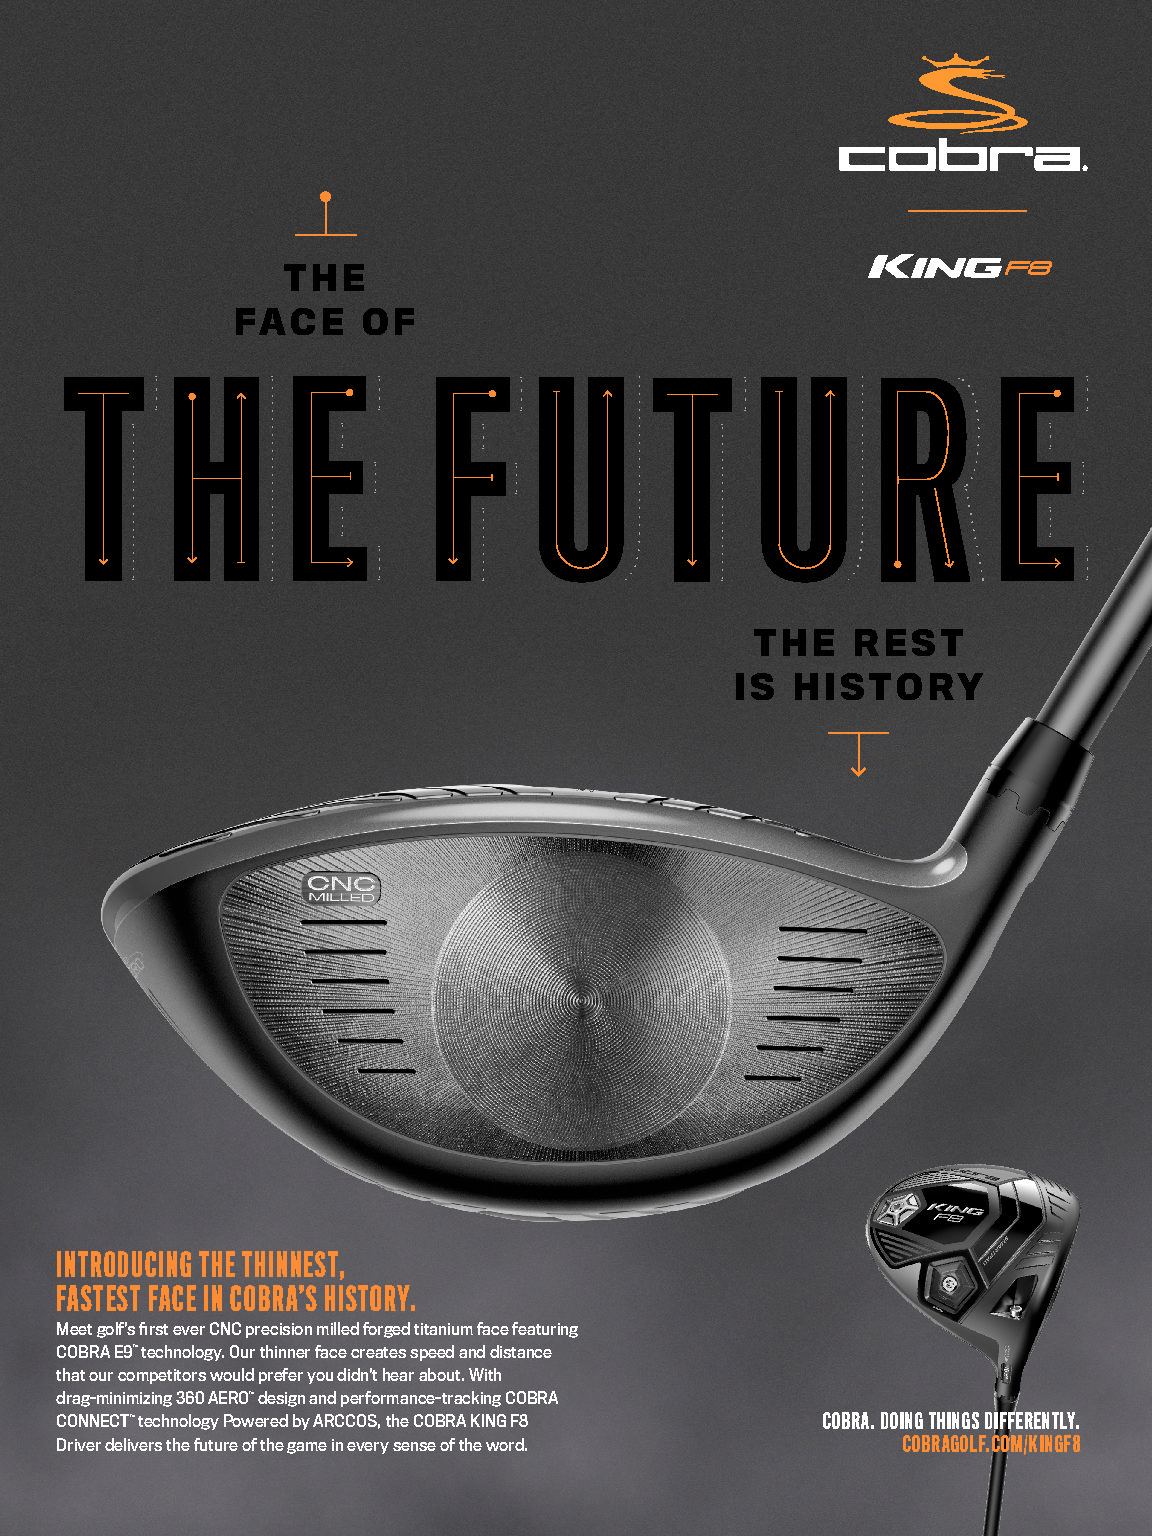 Cobra has announced their KING F8 line! We're talking drivers, fairway woods, hybrids and irons! Yes, there will be a one length option in the irons. But you should really keep a look out for this driver. The F8 and F8+ driver is like no other driver out there. I'm not sure if Cobra plans to make this driver in multiple colors like they have in the past, but that is not what makes this Cobra driver special. What makes this driver special is the face! The face is CNC milled… normally that's for a putter!!! A CNC milled face […]